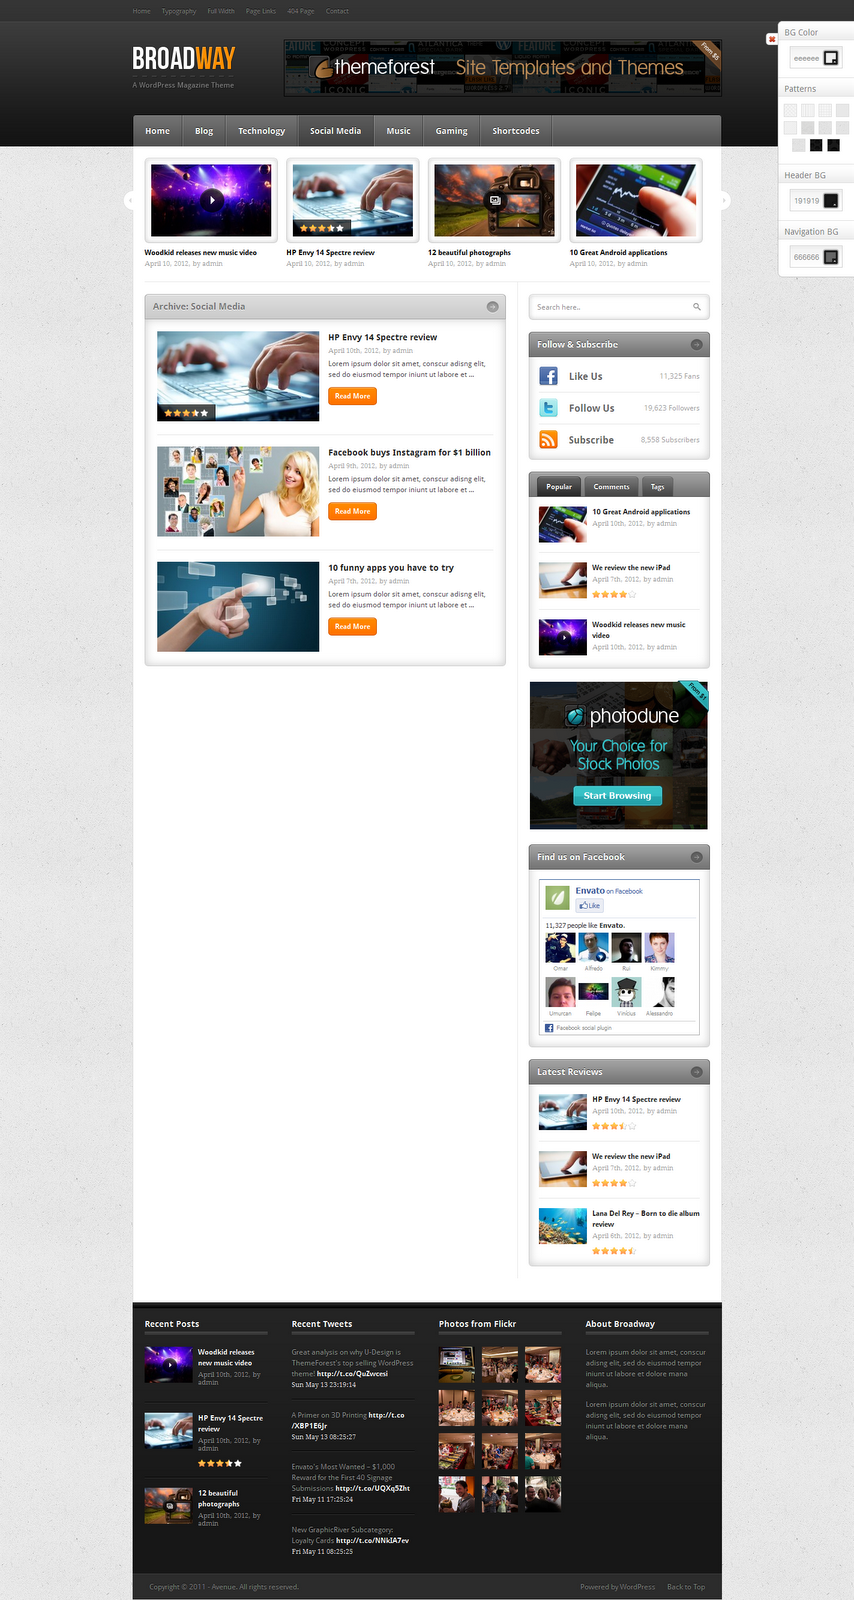 BroadWay-Wordpress-Template-Social-Media-Page